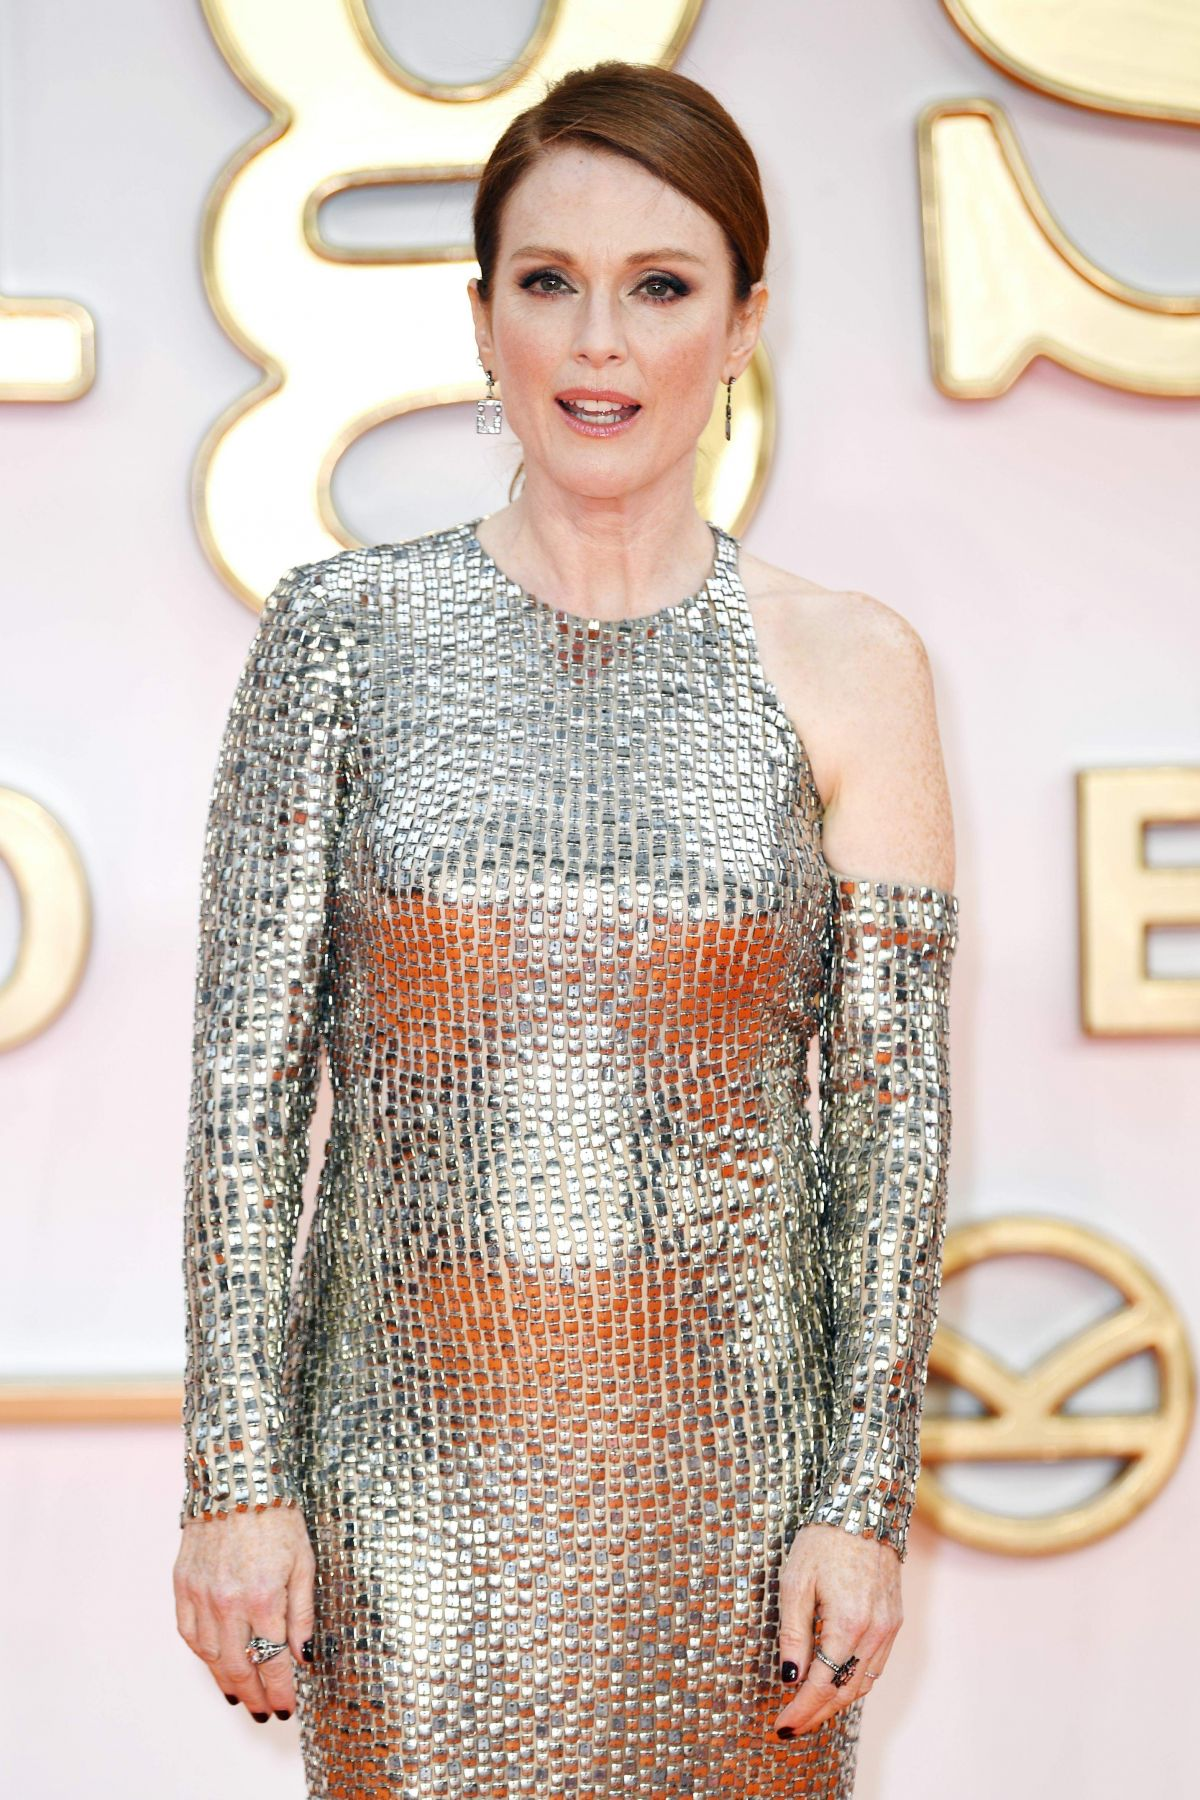 JULIANNE MOORE at Kingsman: The Golden Circle Premiere in London 09/18/2017